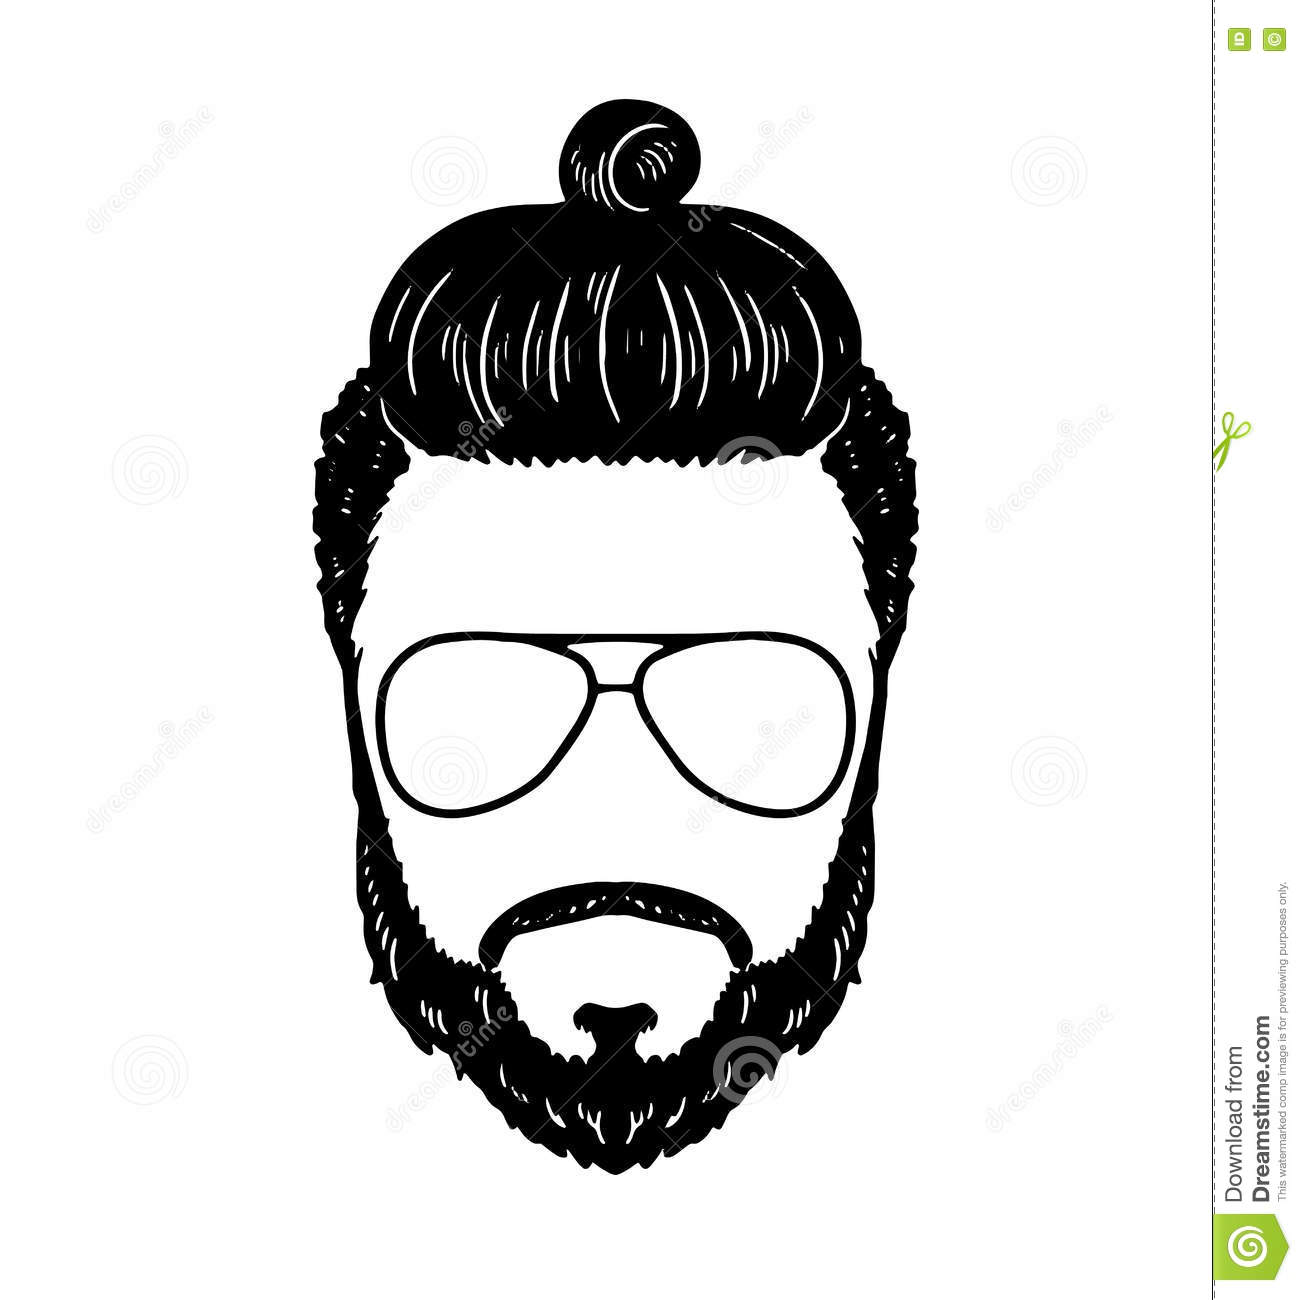 Barbershop Hipster Beard Mustache Glasses Hairstyle Vector Image